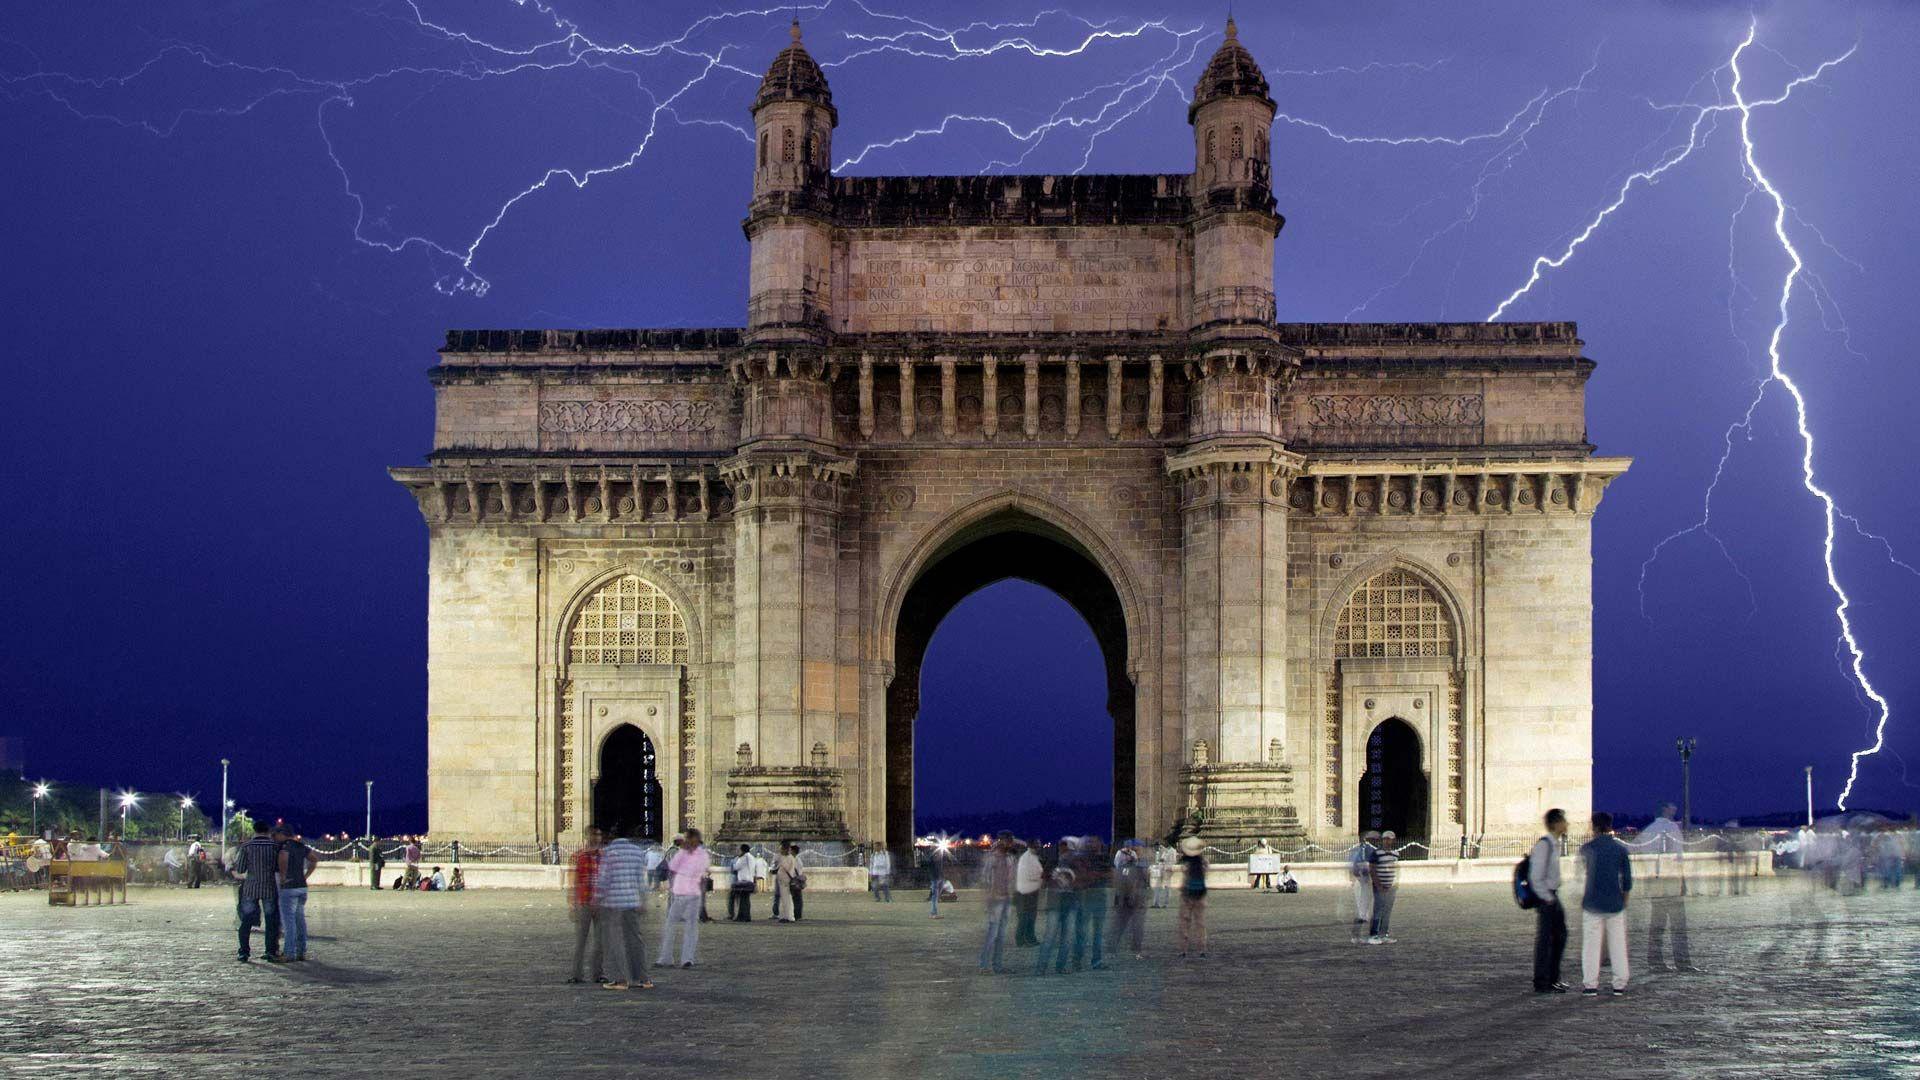 View of the Gateway of India during a storm